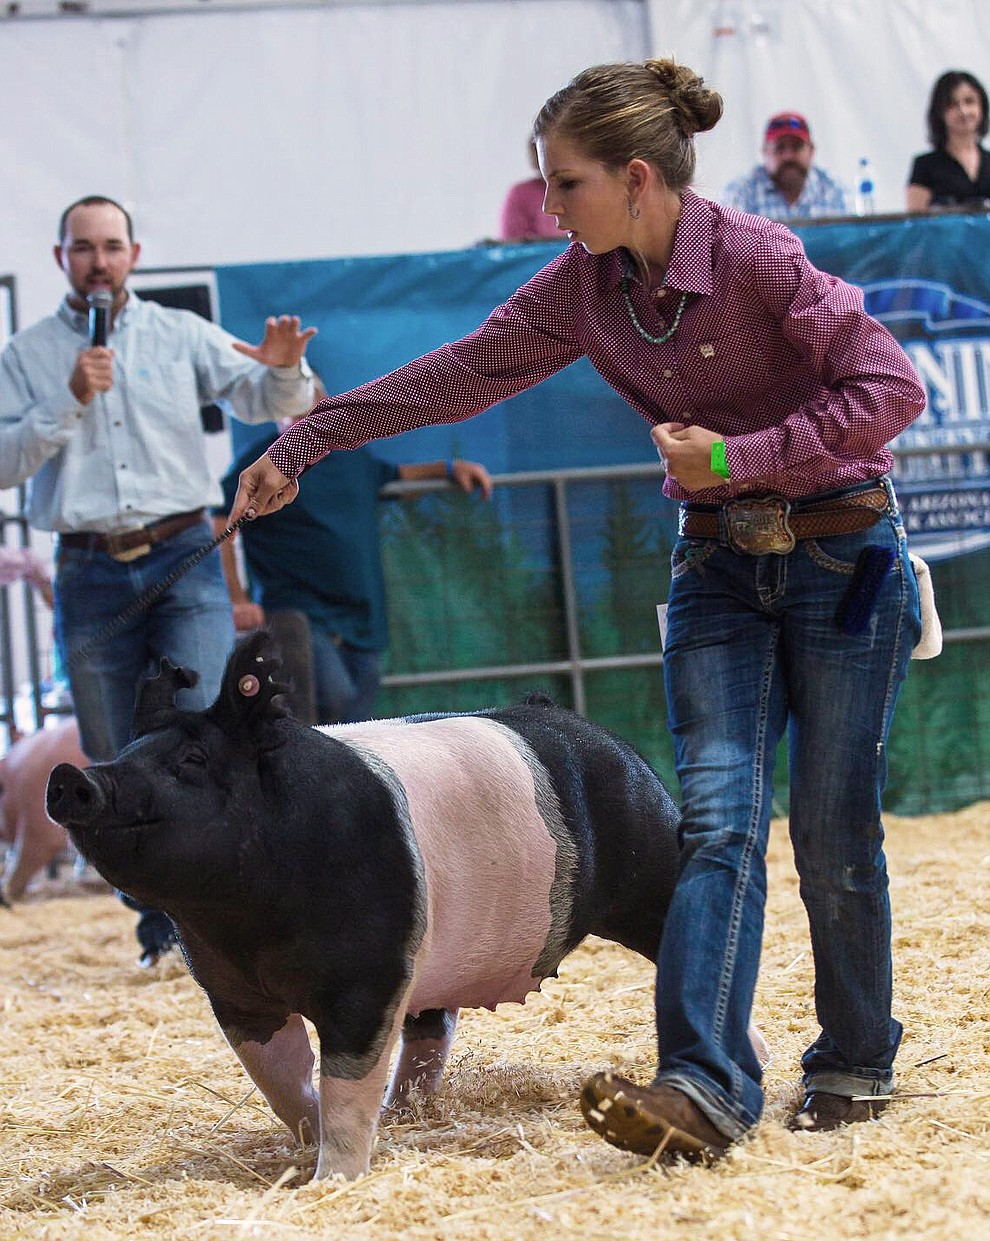 Rebecca Westlake shows her pig at the fair. (Submitted photo)